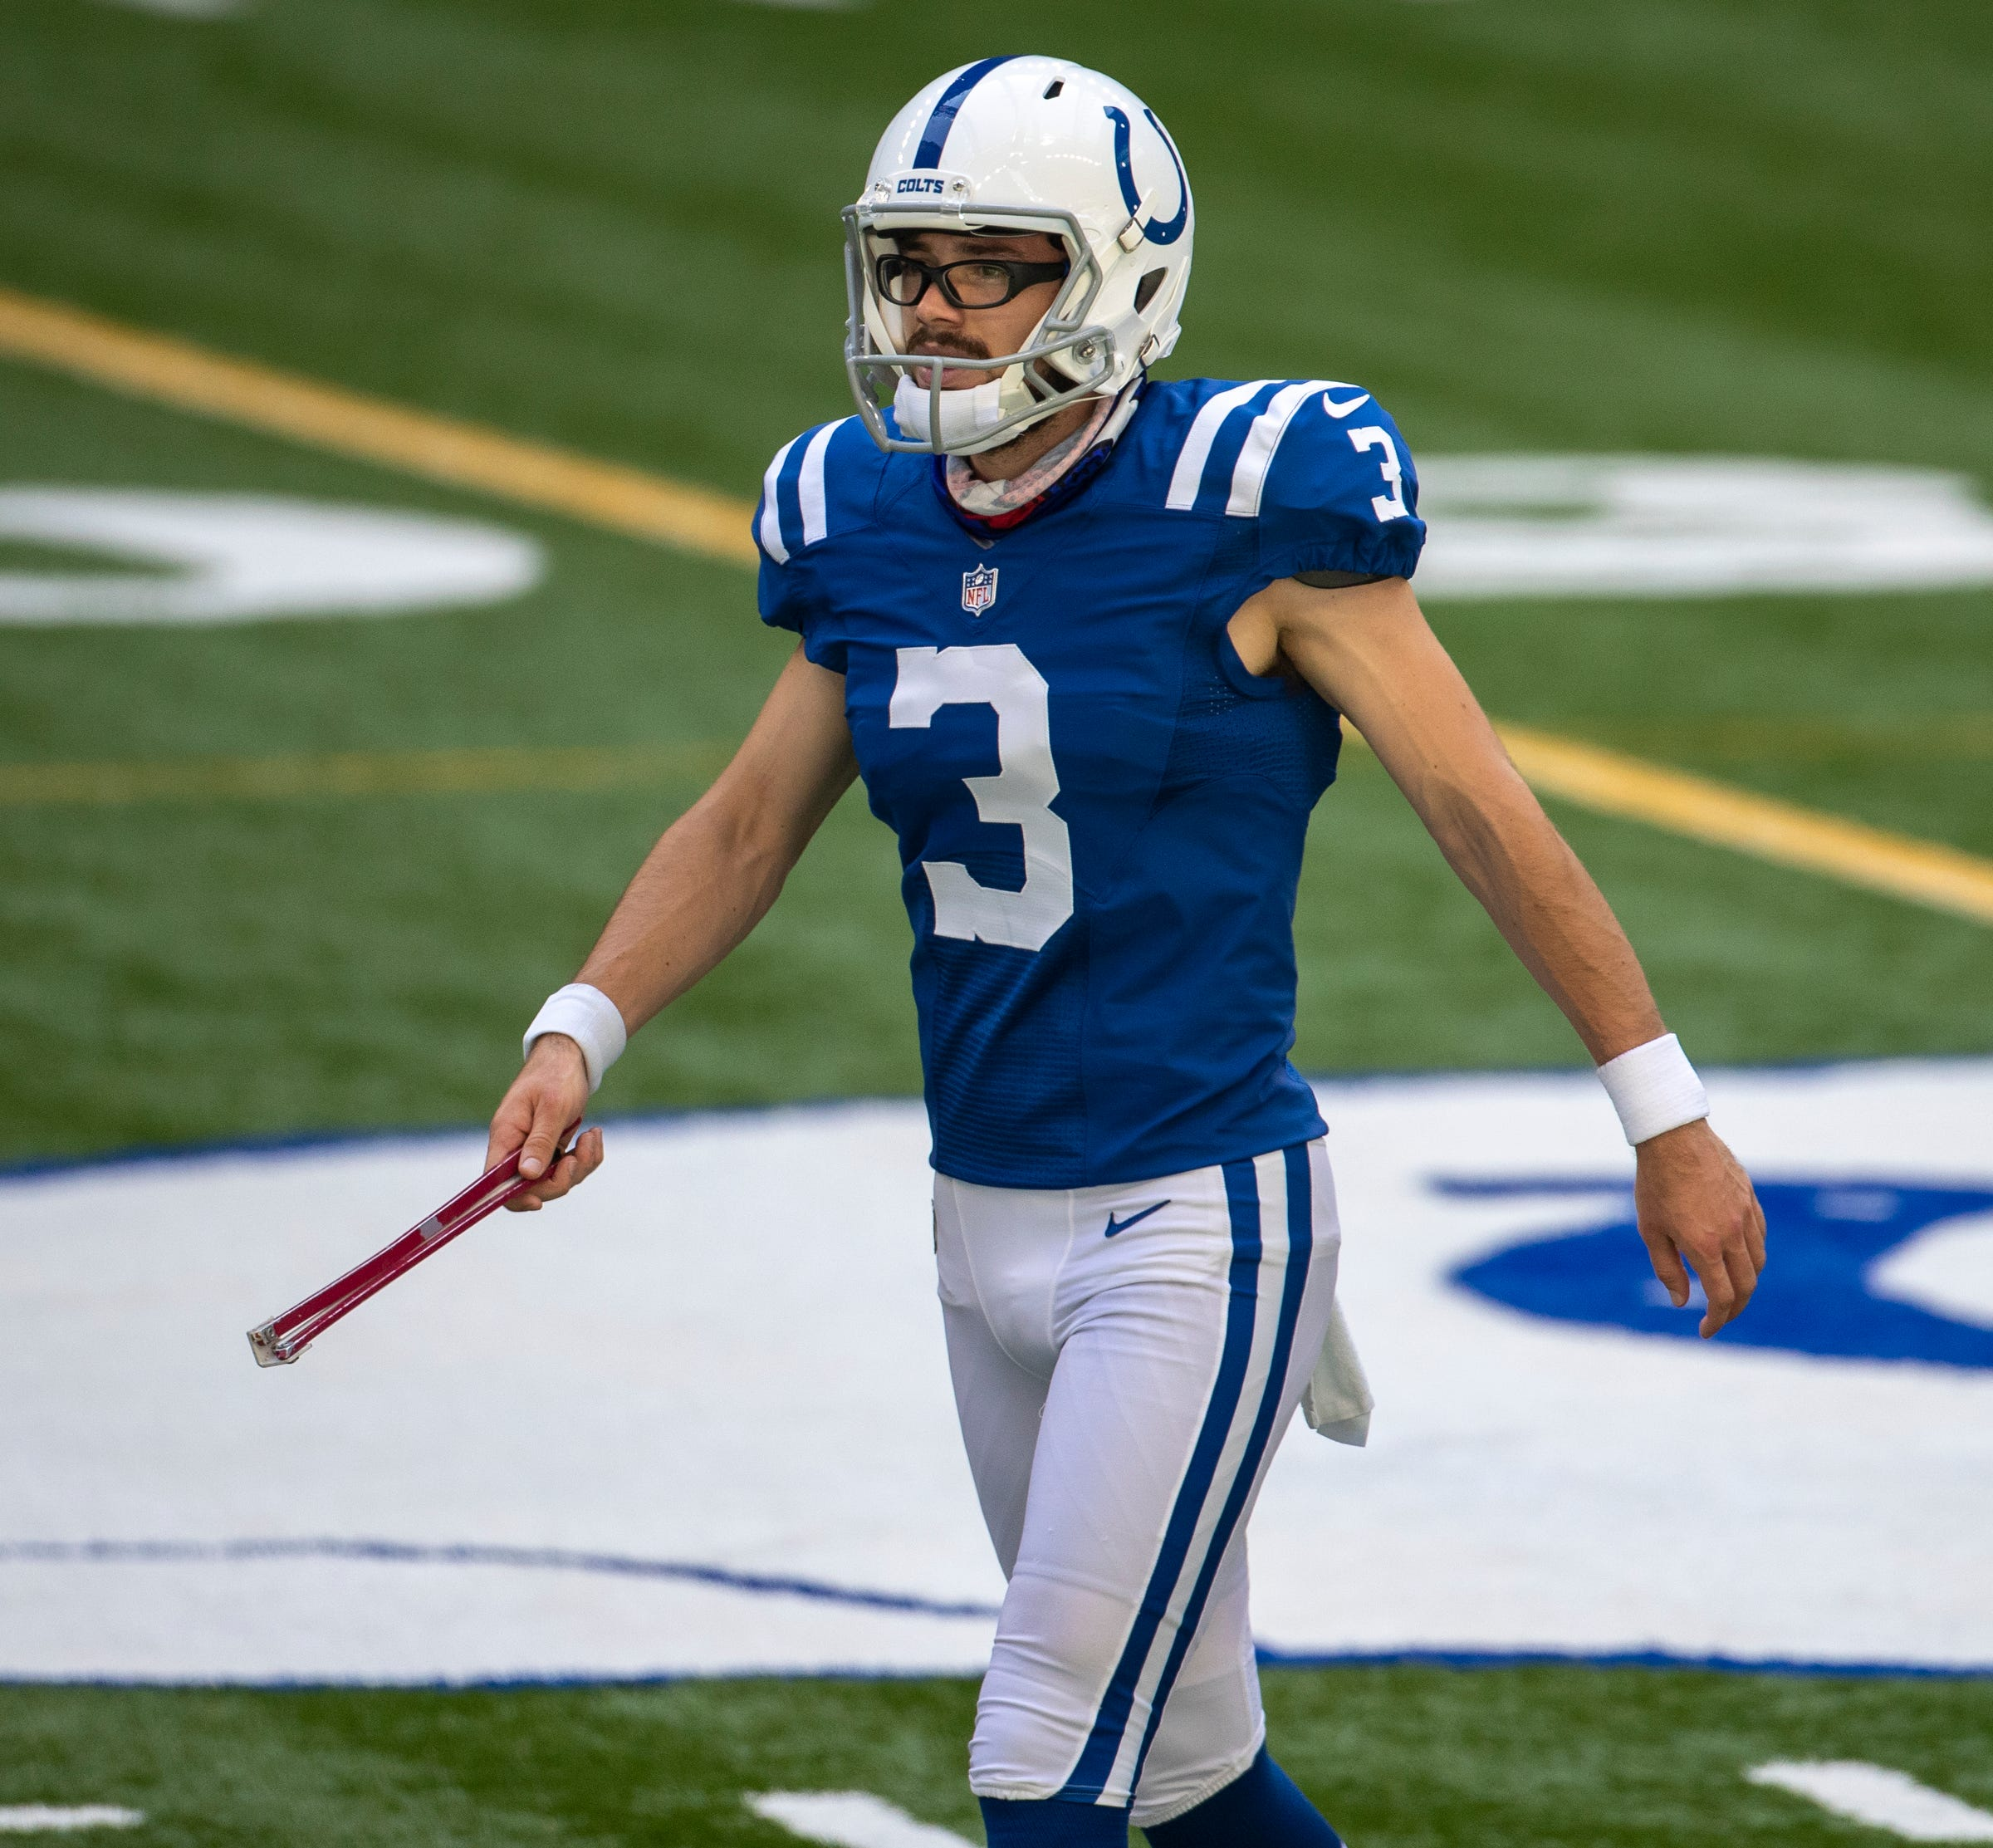 Rodrigo Blankenship Wins Colts Kicker Job Chase Mclaughlin Cut